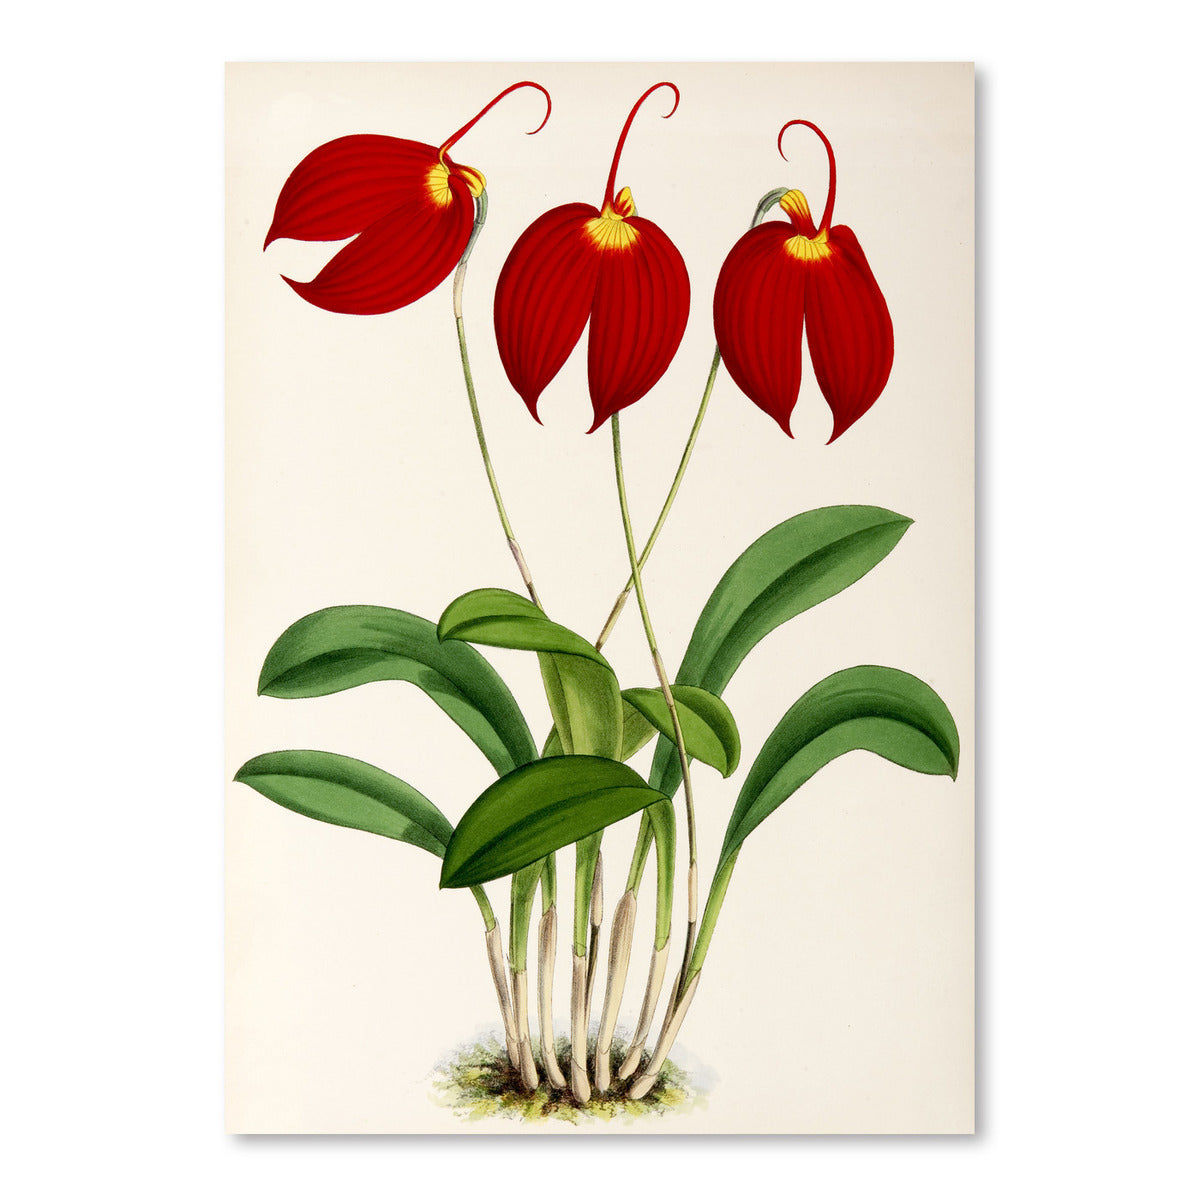 Fitch Orchid Masdevalliaignea by New York Botanical Garden Art Print - Art Print - Americanflat